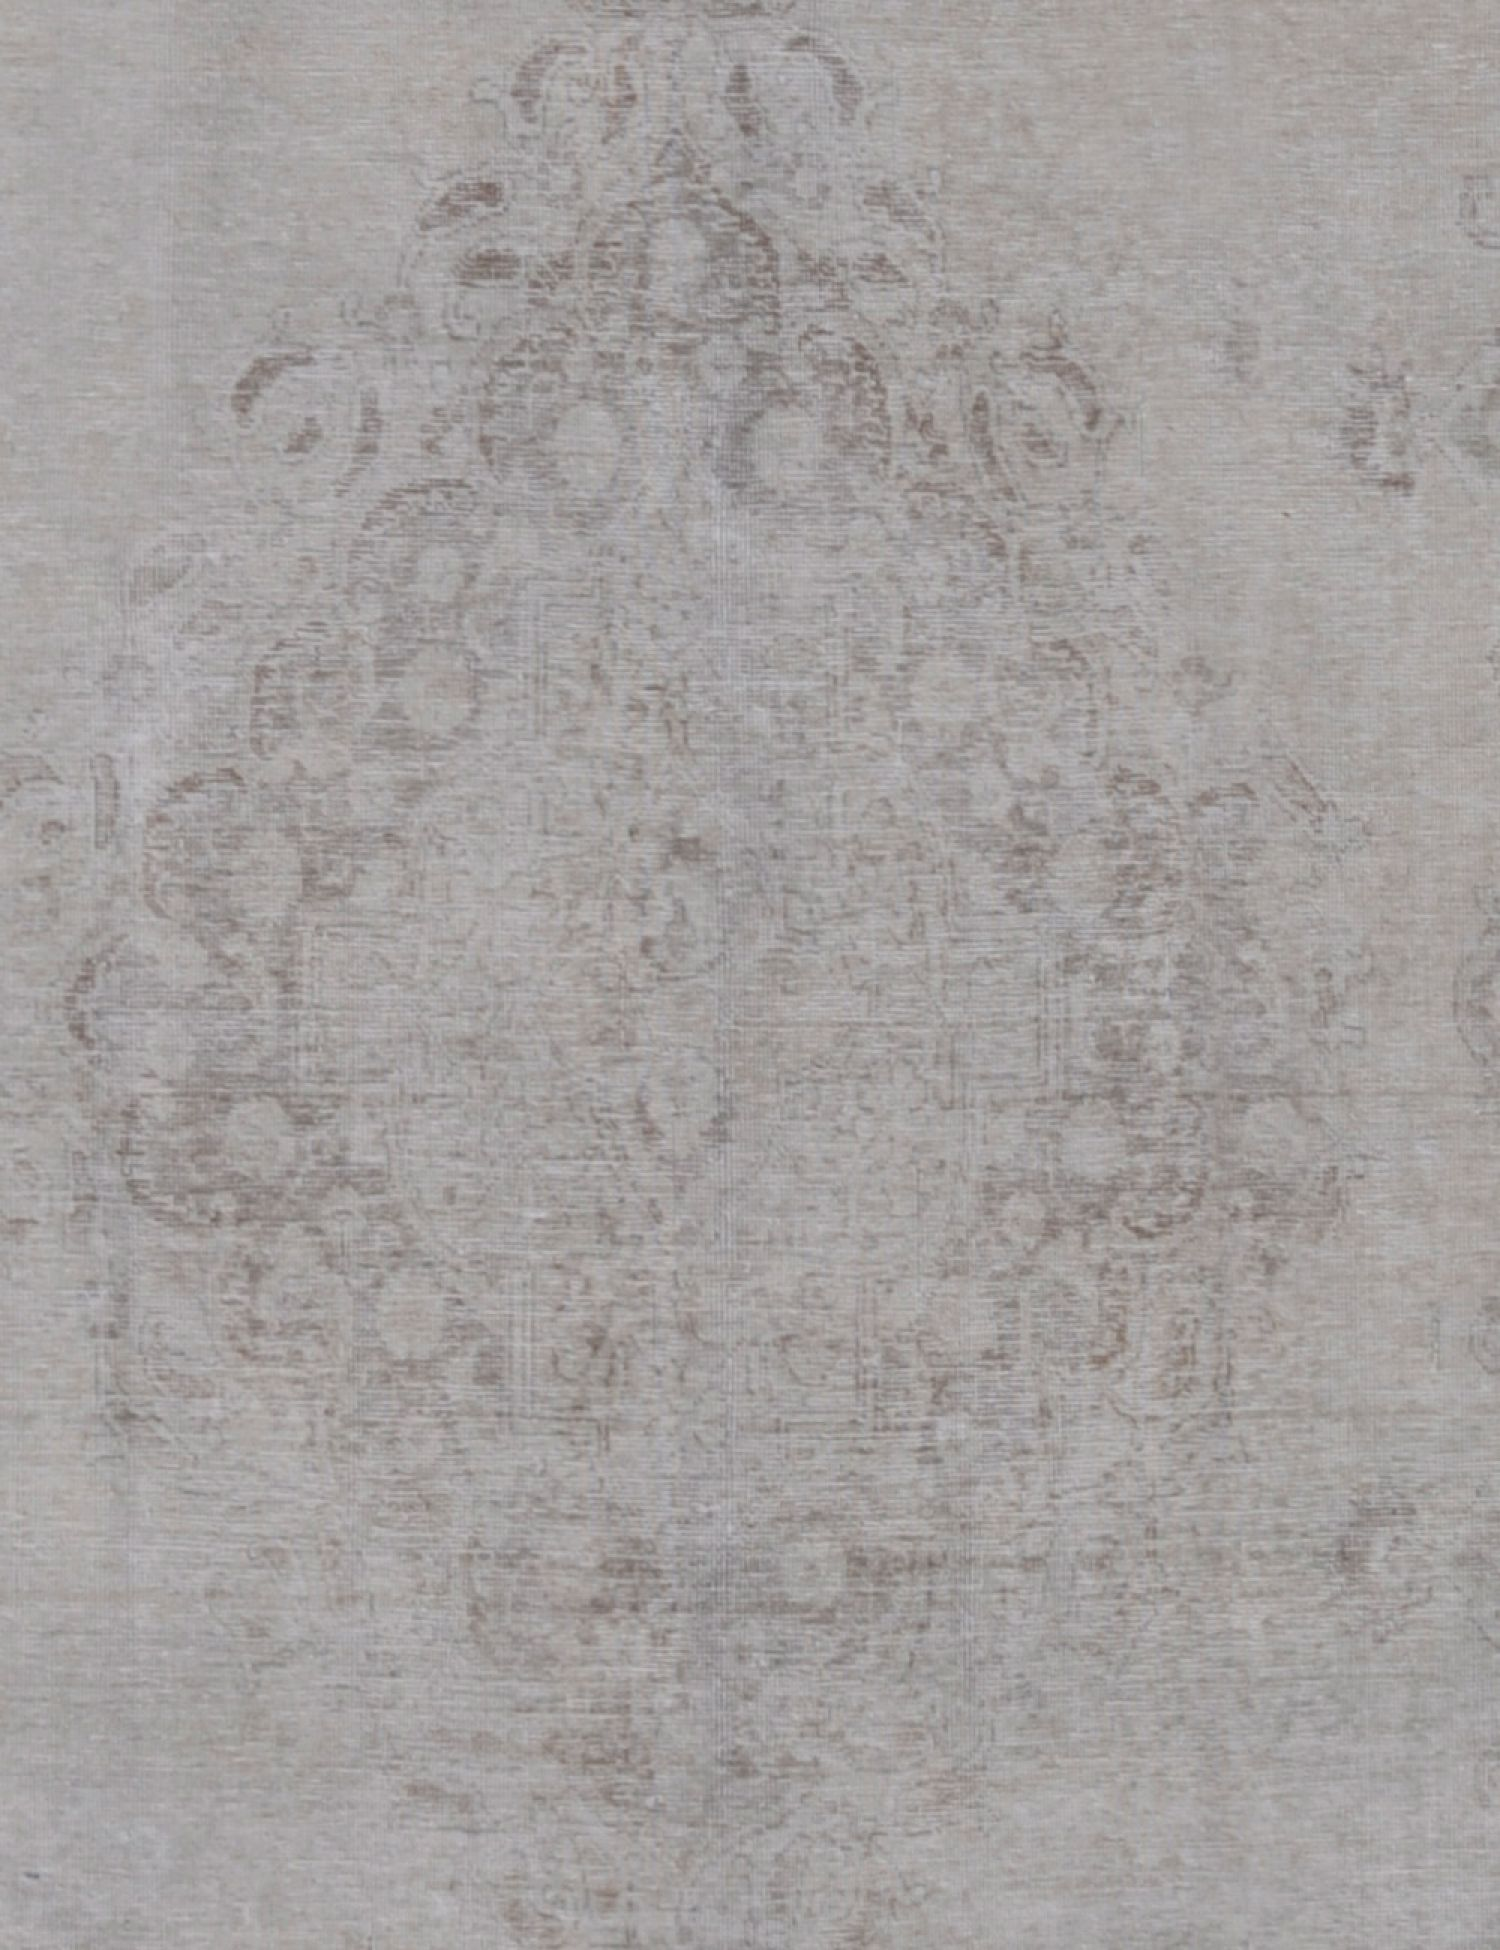 Vintage Carpet  grey <br/>393 x 272 cm